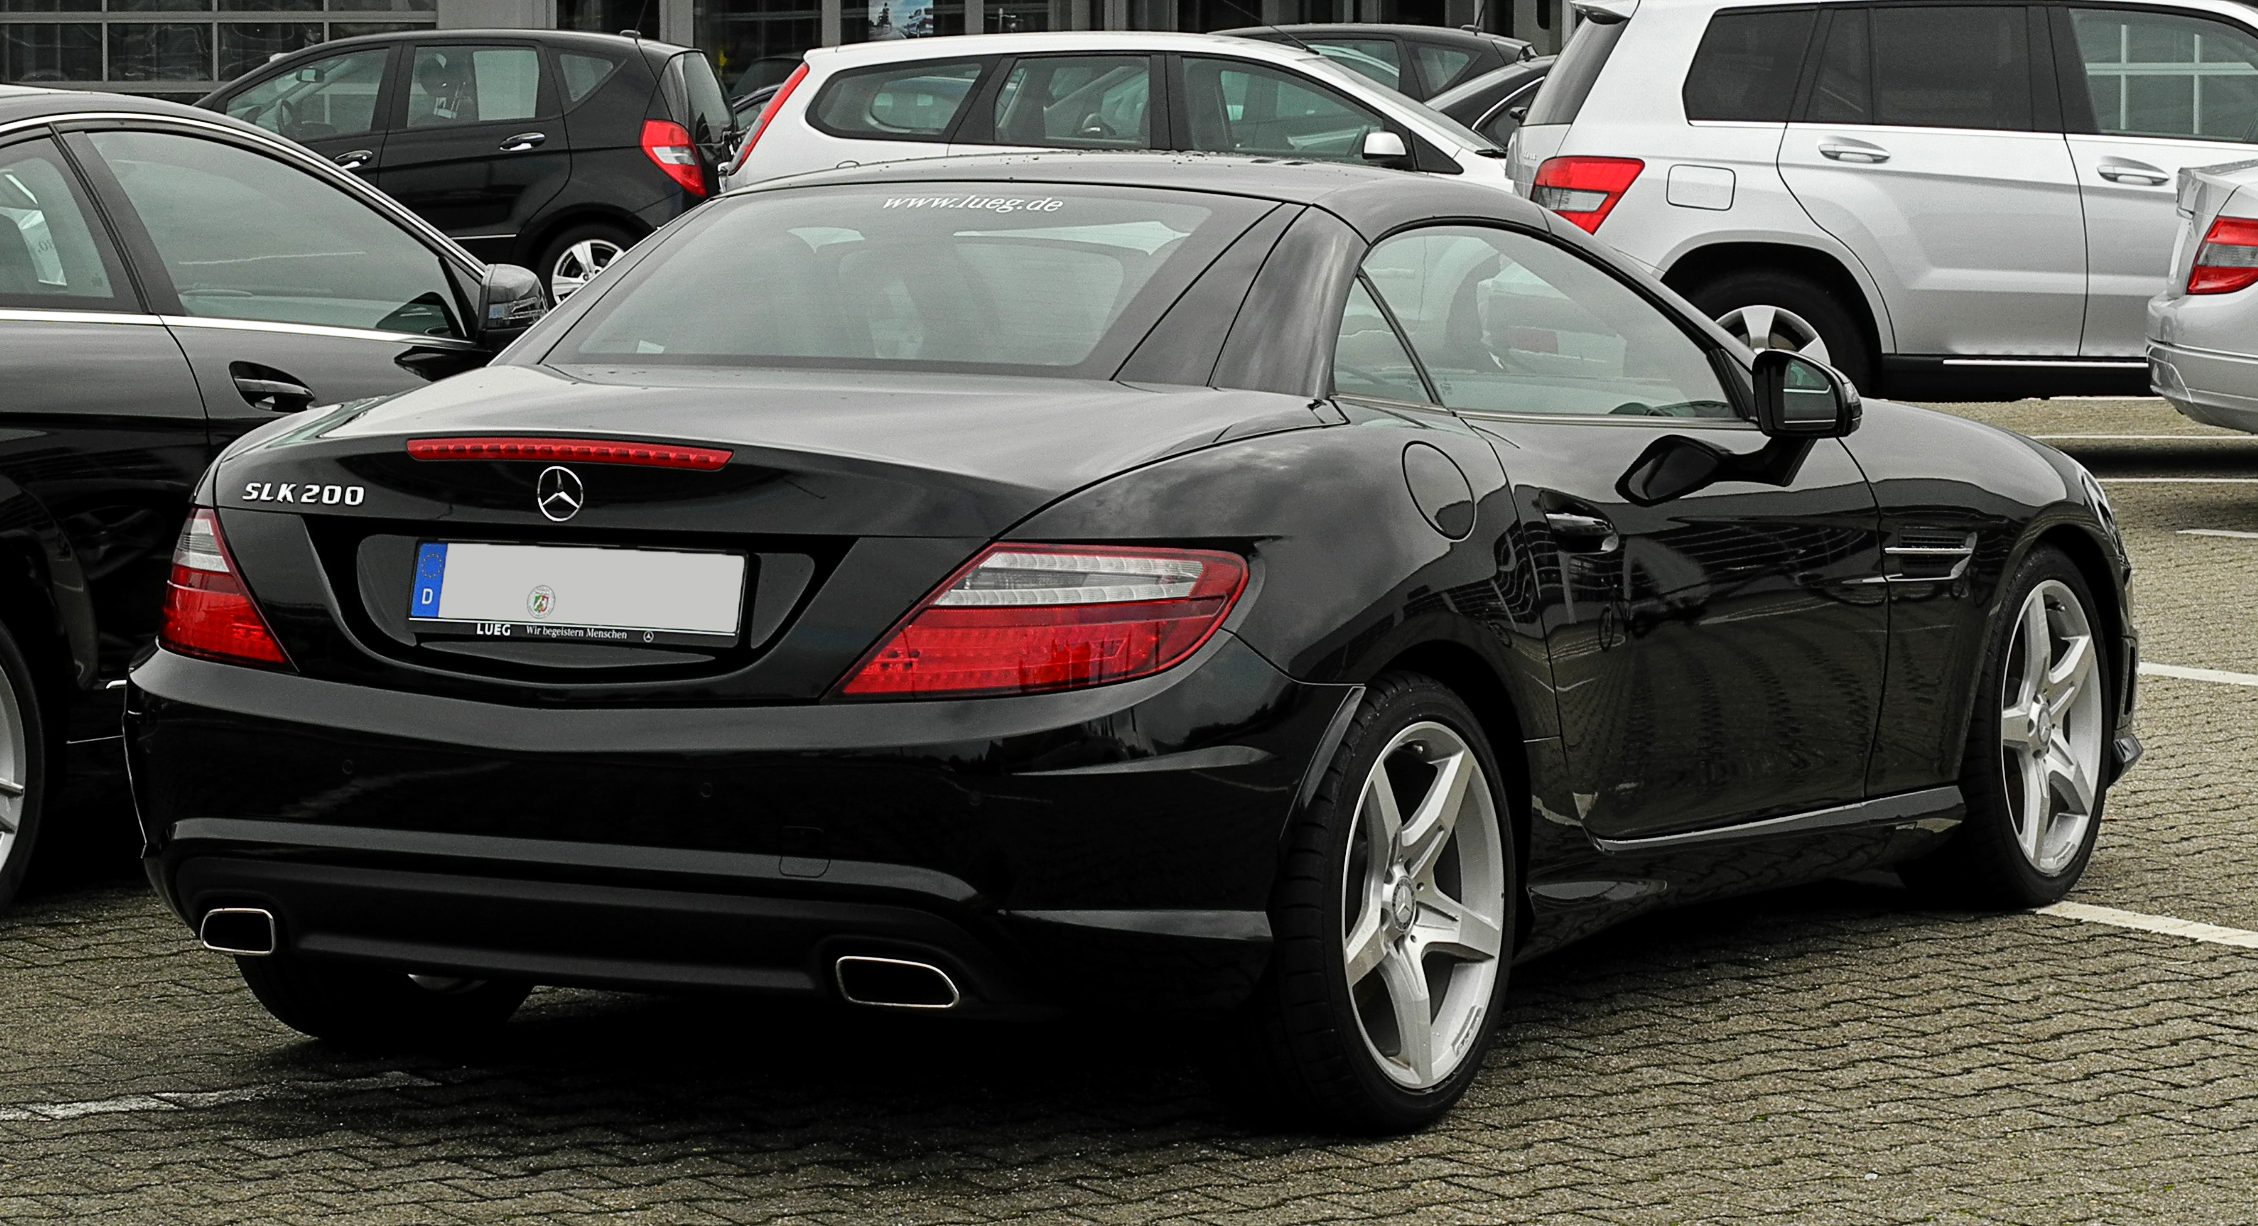 mercedes benz slk 200 blueefficiency photos and comments. Black Bedroom Furniture Sets. Home Design Ideas